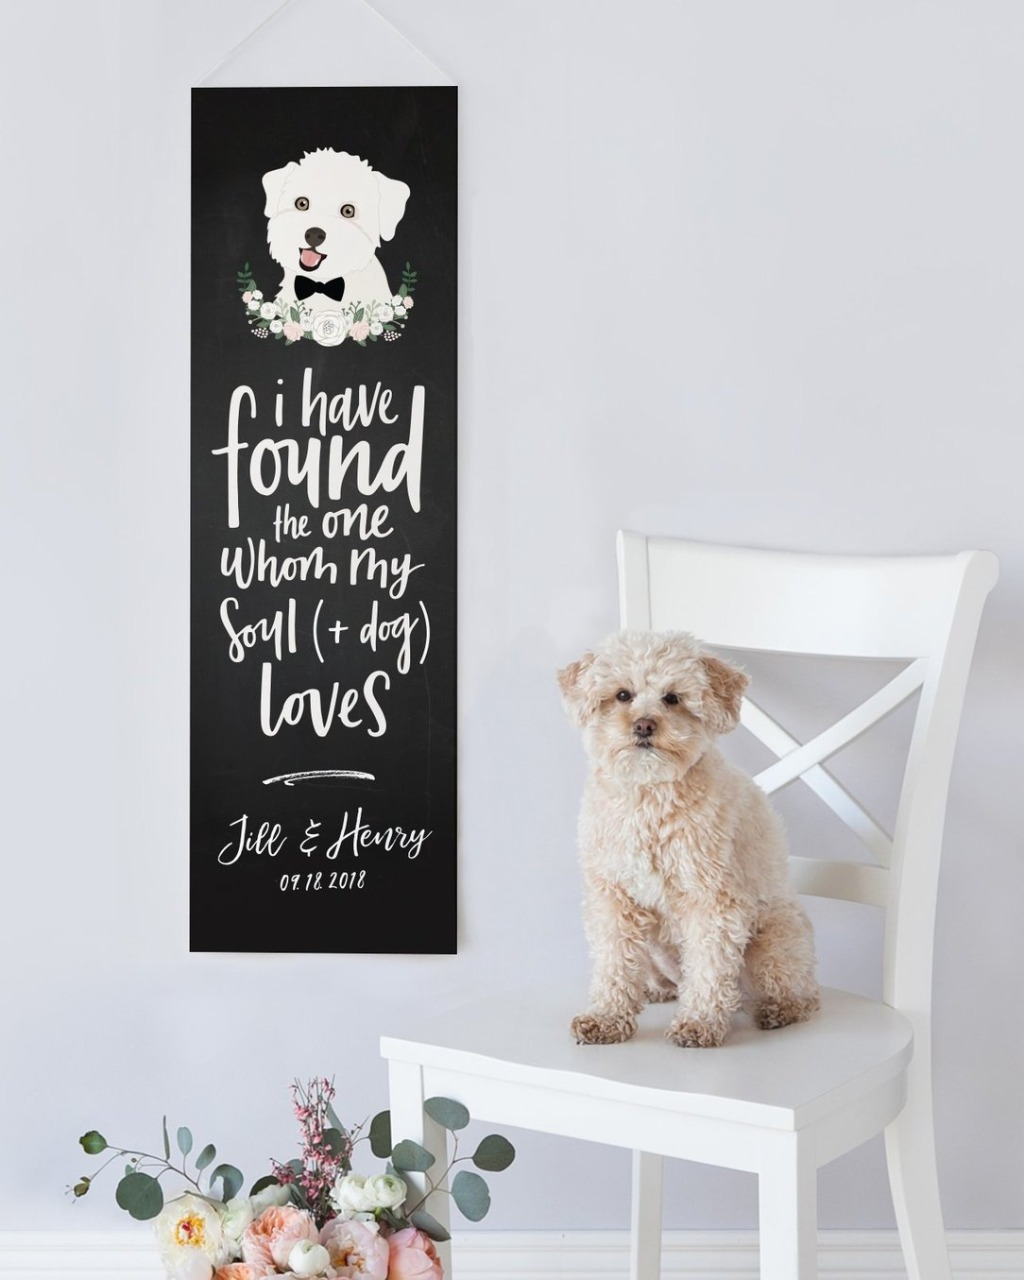 This Chalkboard Inspired Wedding Banner With Your Pet's Portrait from Miss Design Berry is the BEST wedding decor you could ask for